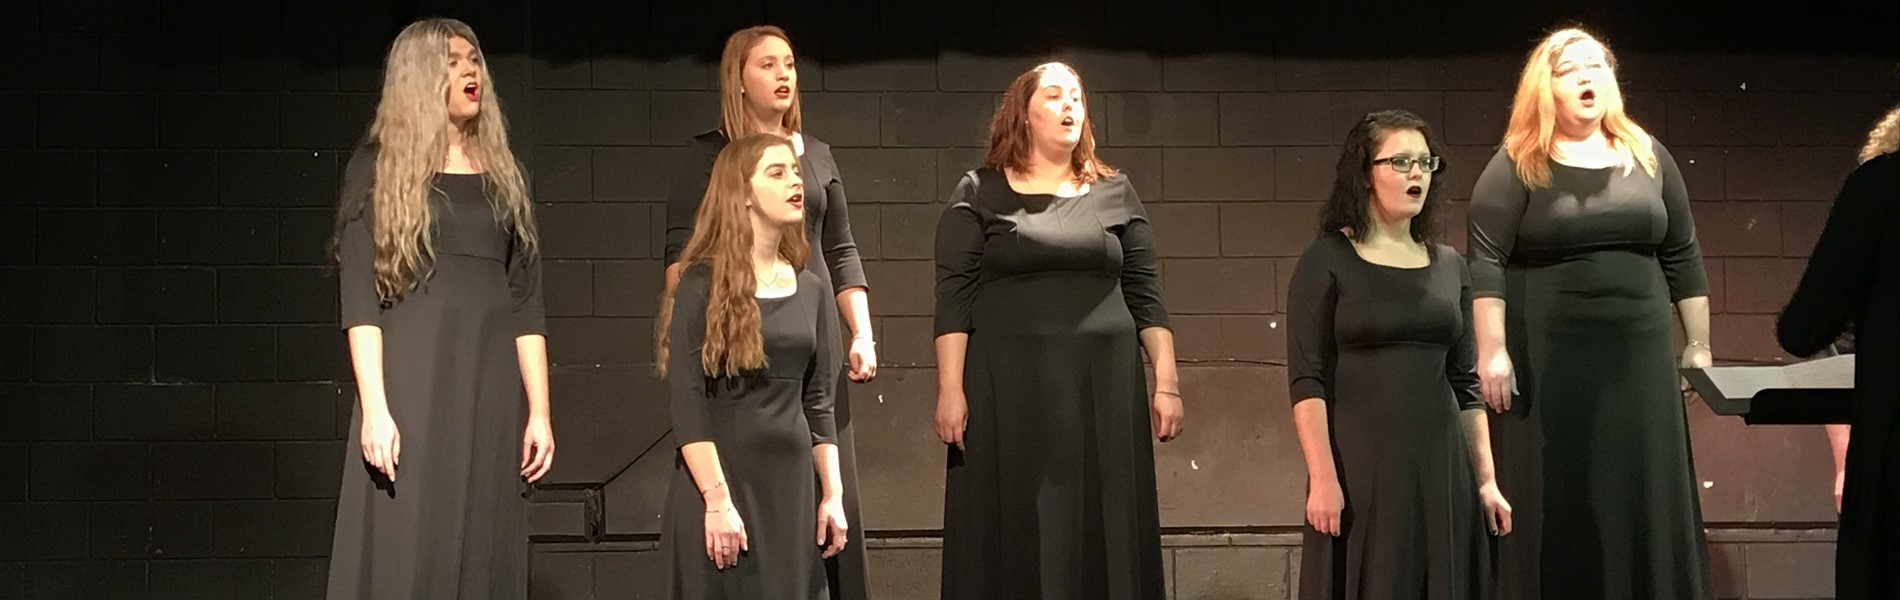 Chorus students singing on stage